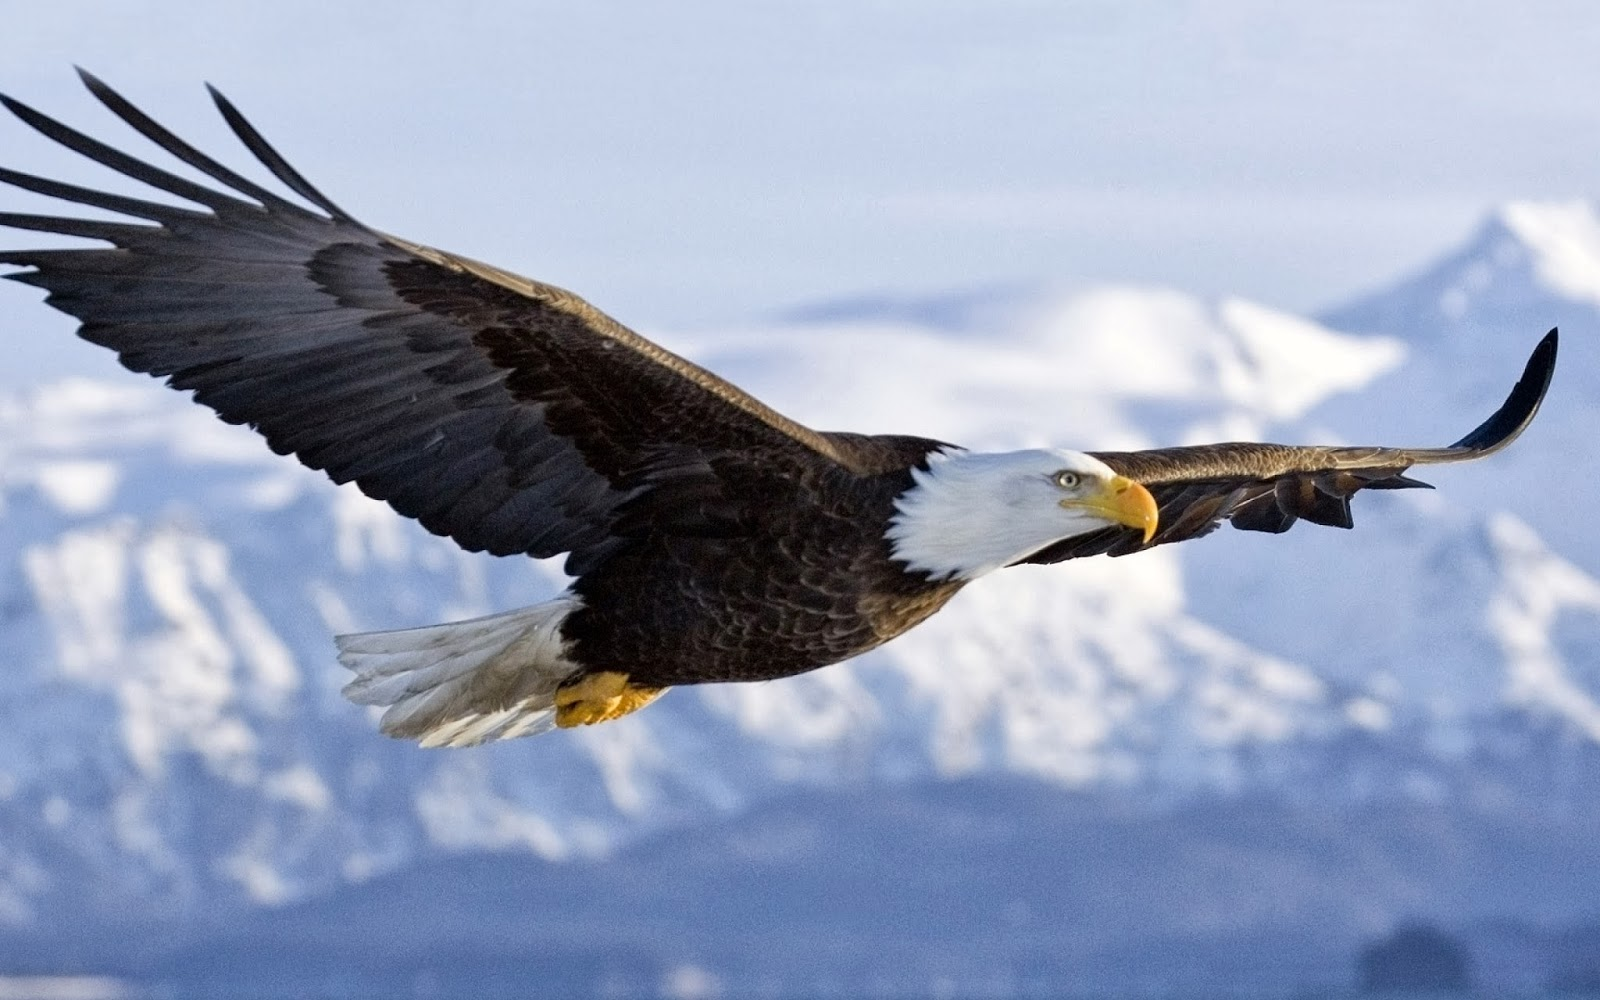 HD Wallpapers 4 u Download 3D Flying Bald Eagle HD Wallpaper 1600x1000